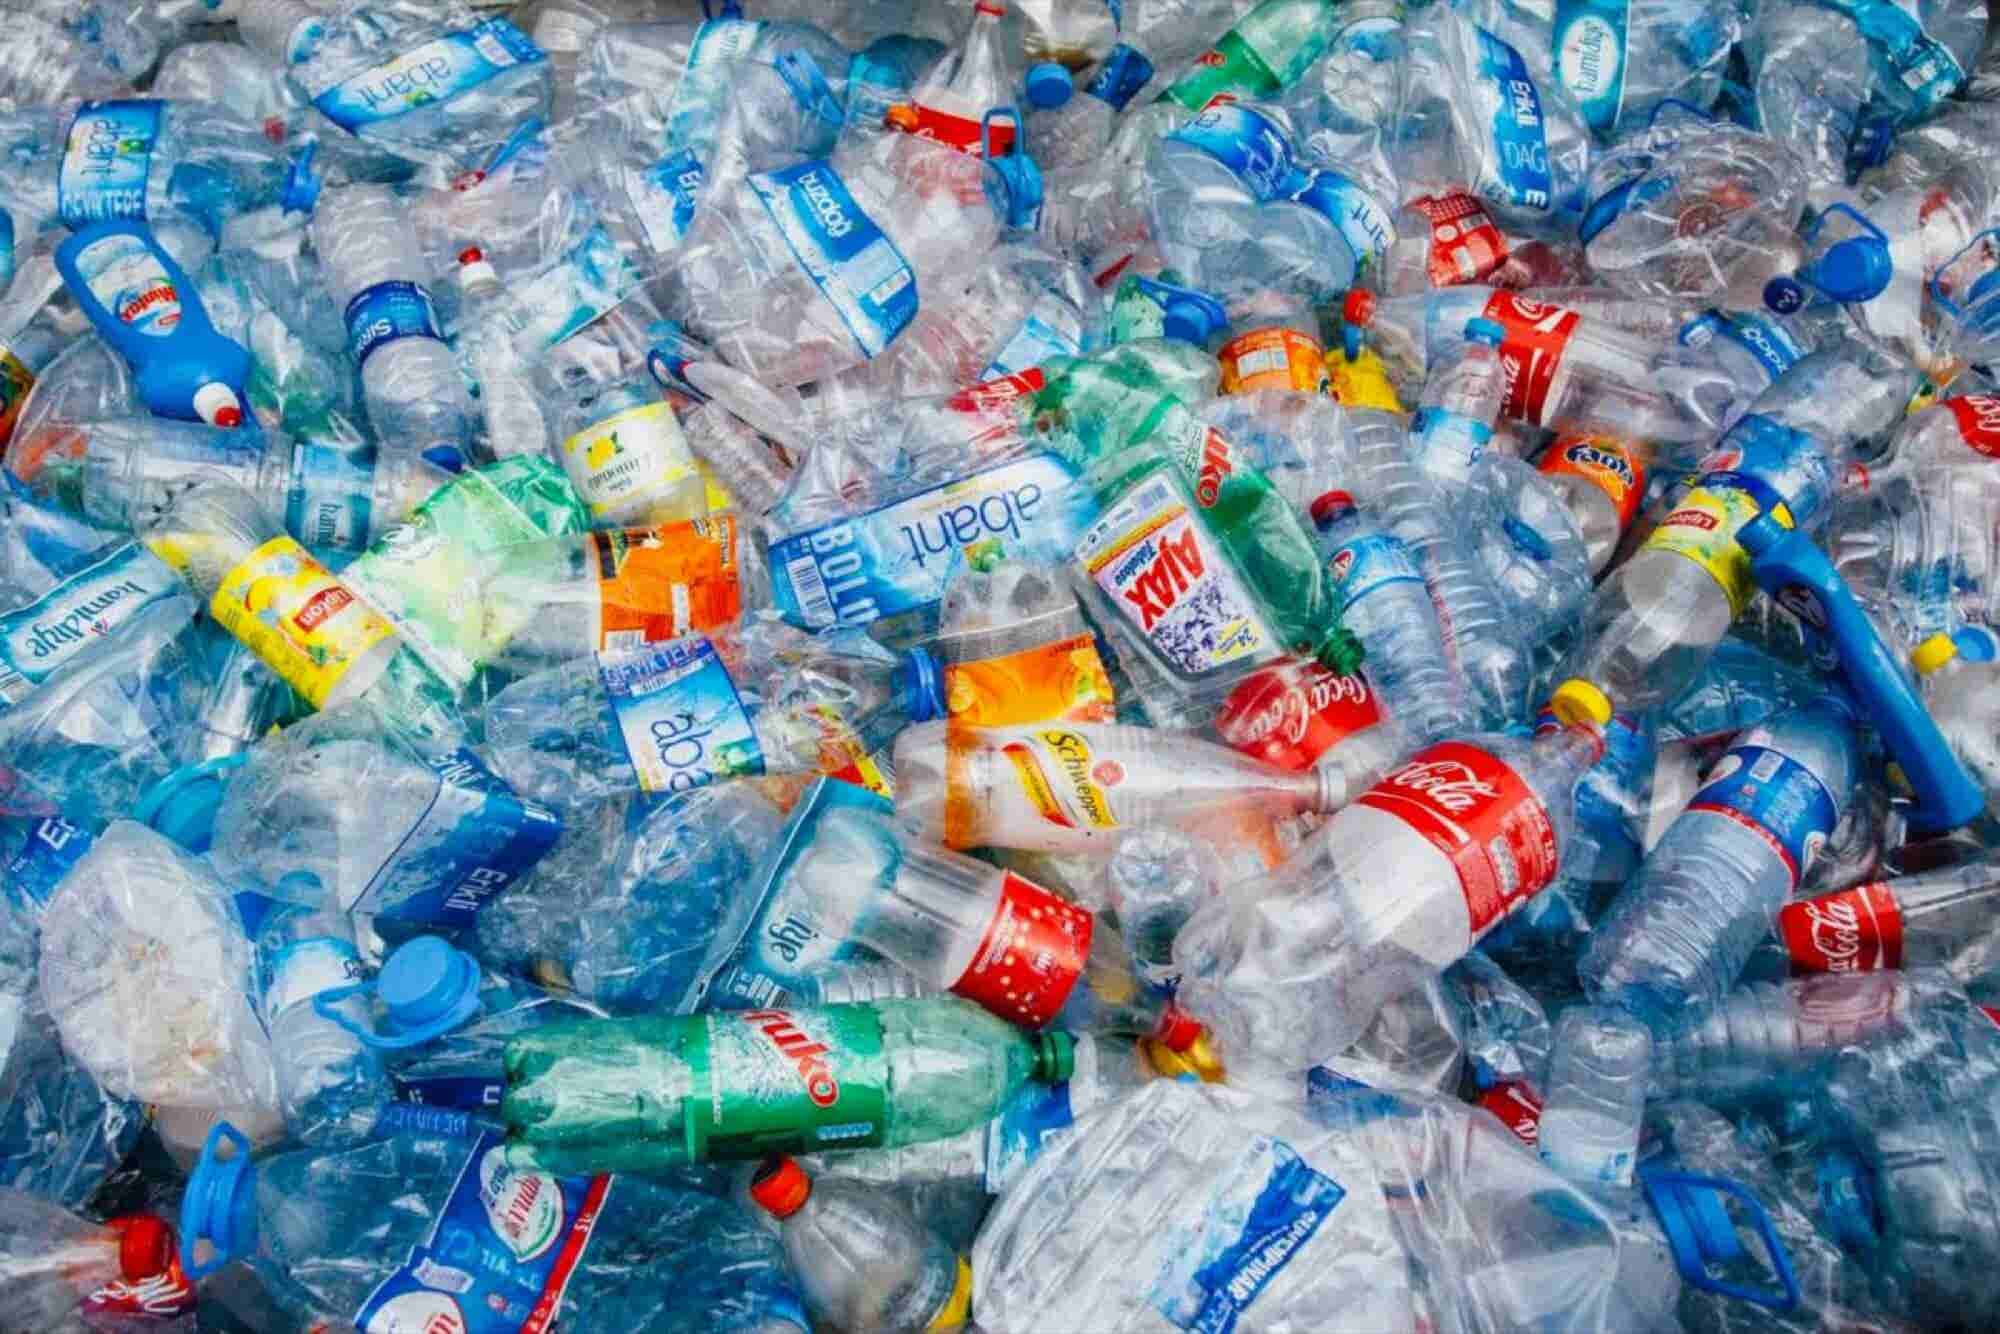 Scientists Accidentally Produce an Enzyme That Devours Plastic